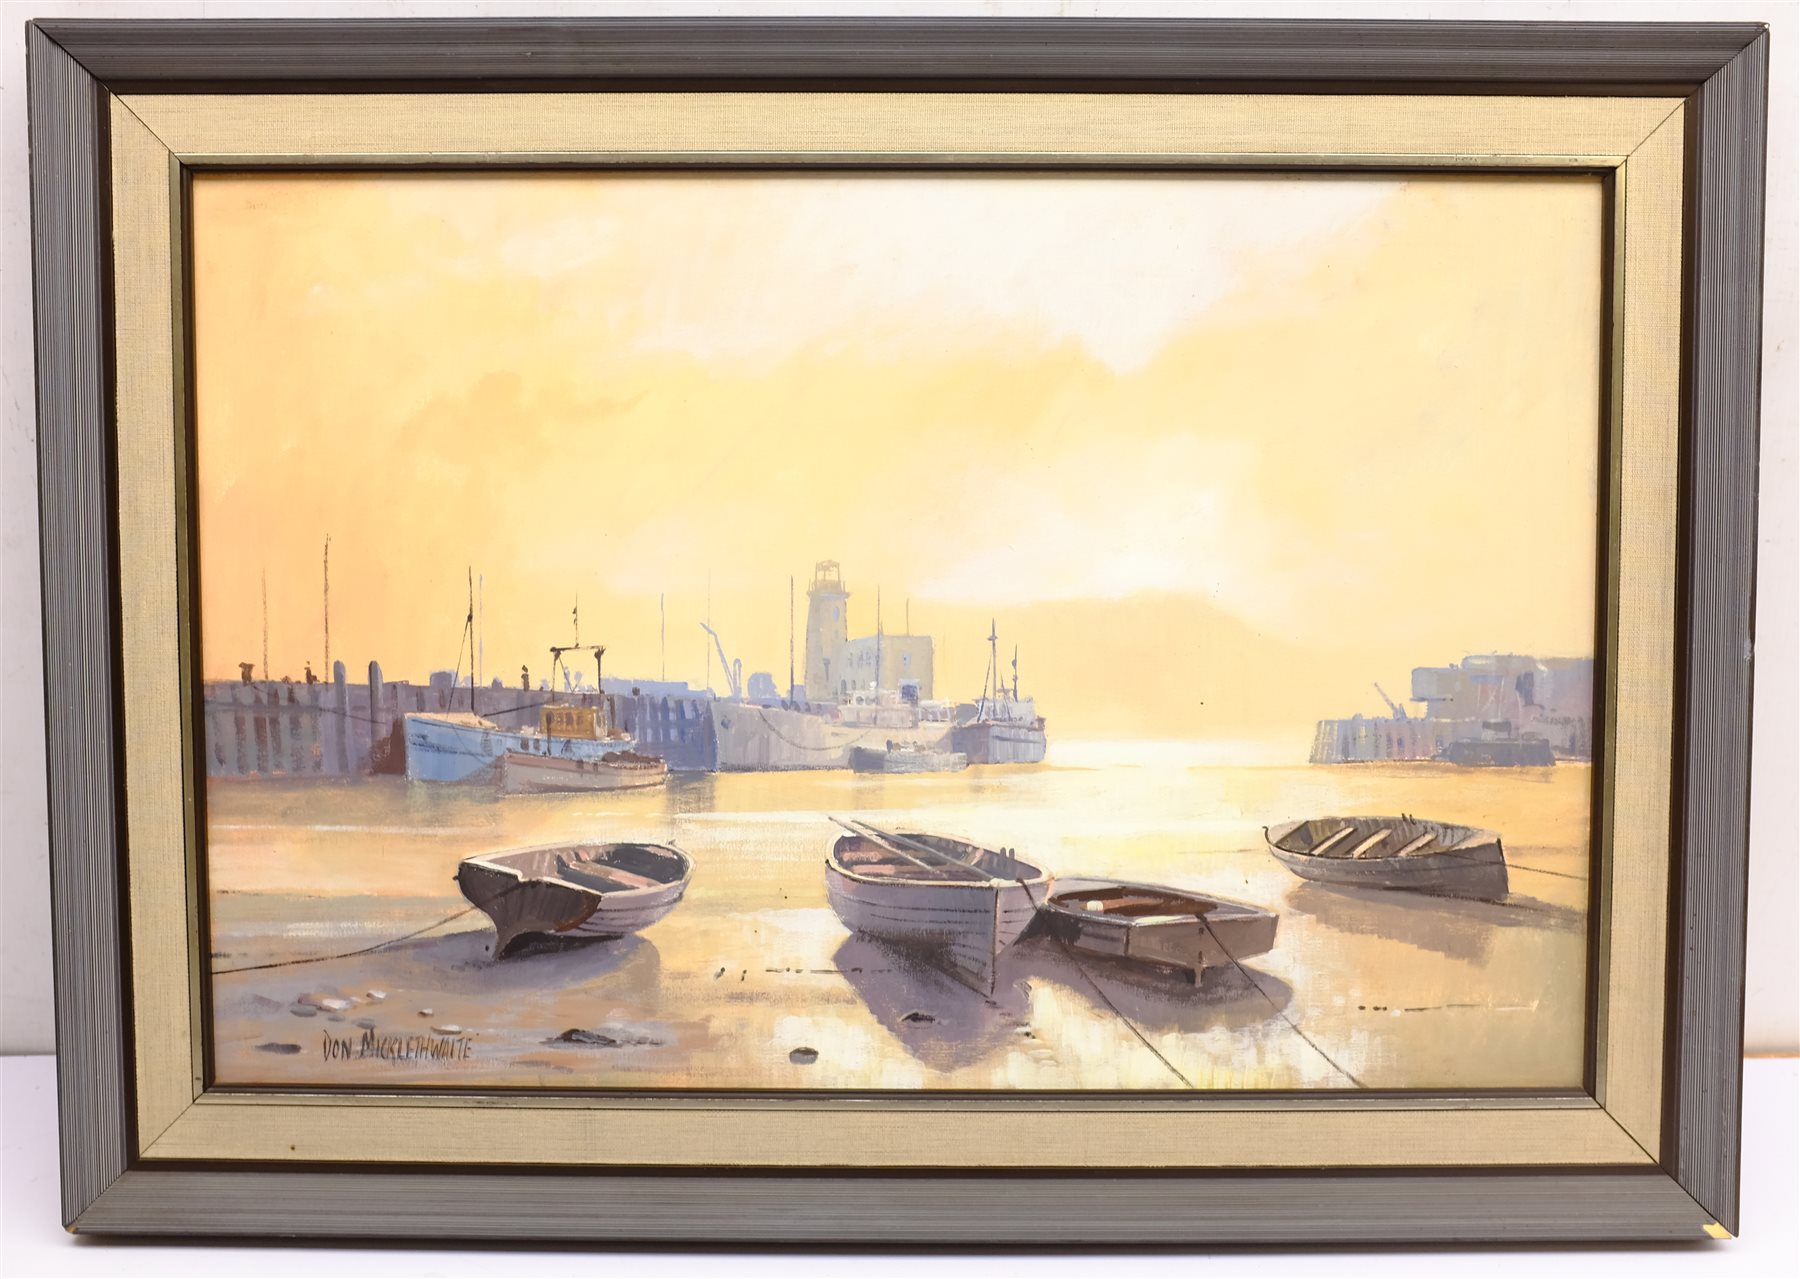 Don Micklethwaite (British 1936-): 'Summer Sun Scarborough', acrylic on board signed, titled and dat - Image 3 of 6